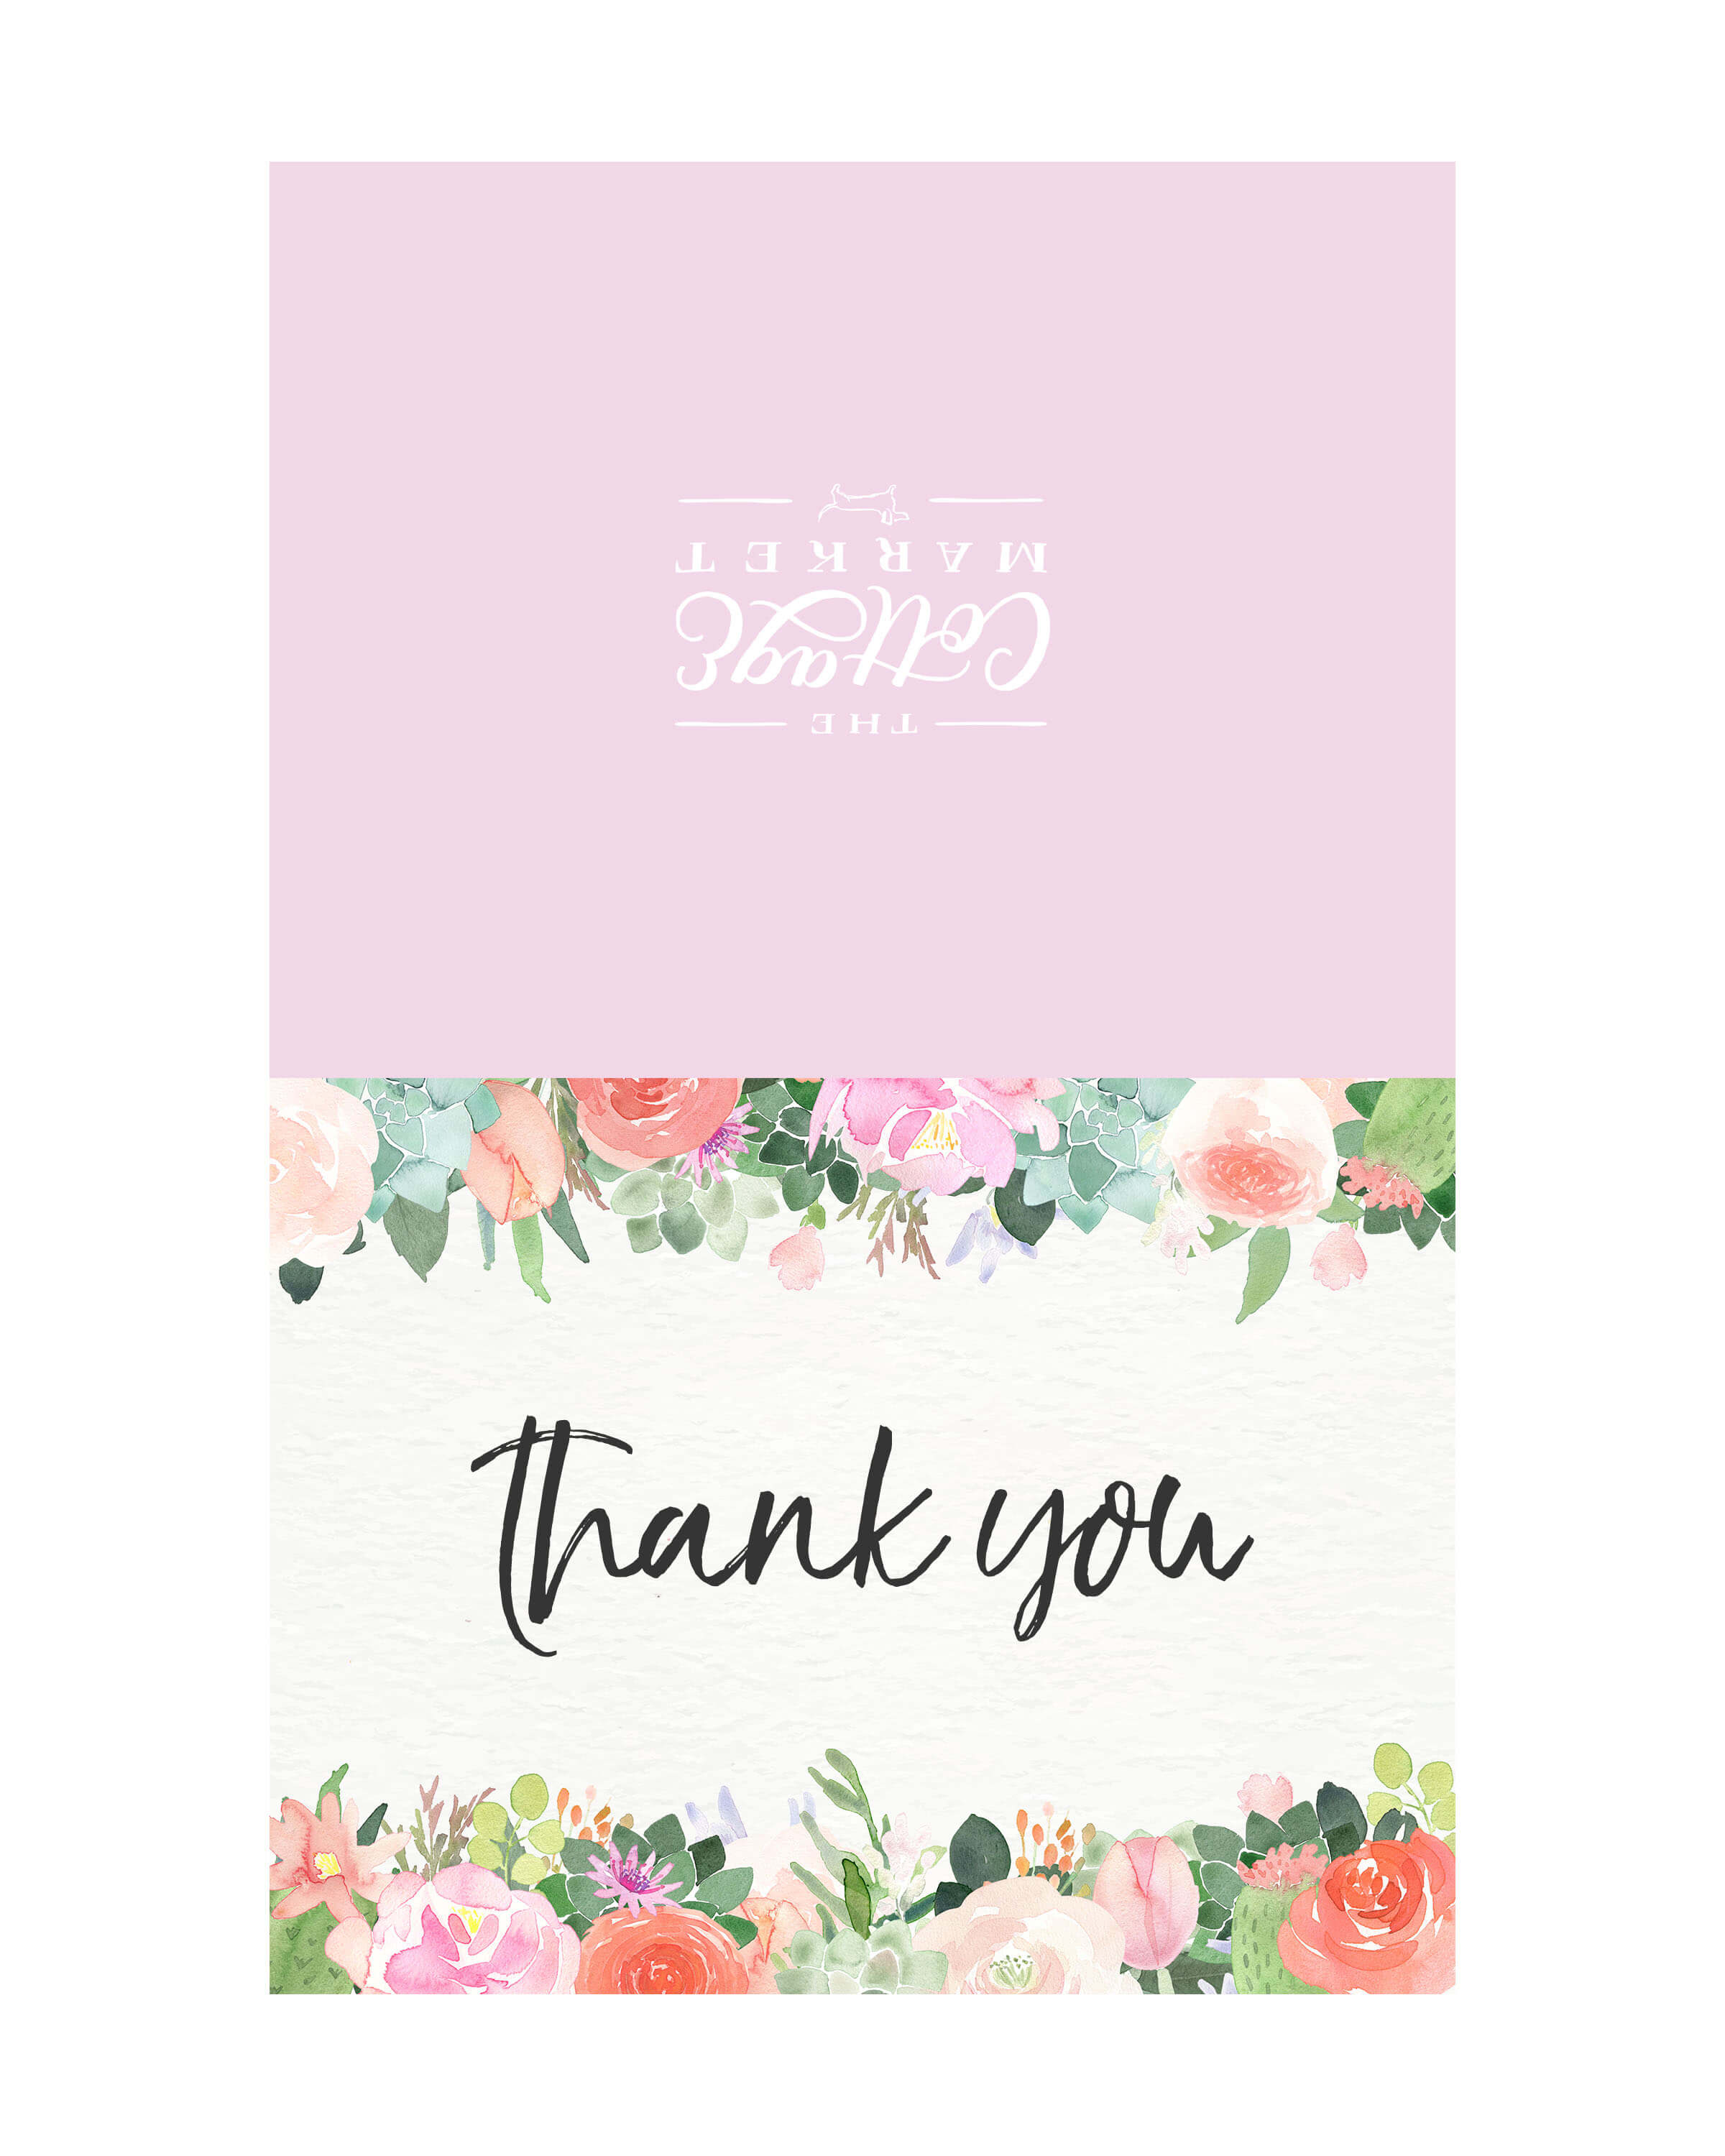 10 Free Printable Thank You Cards You Can't Miss - The throughout Free Printable Thank You Card Template